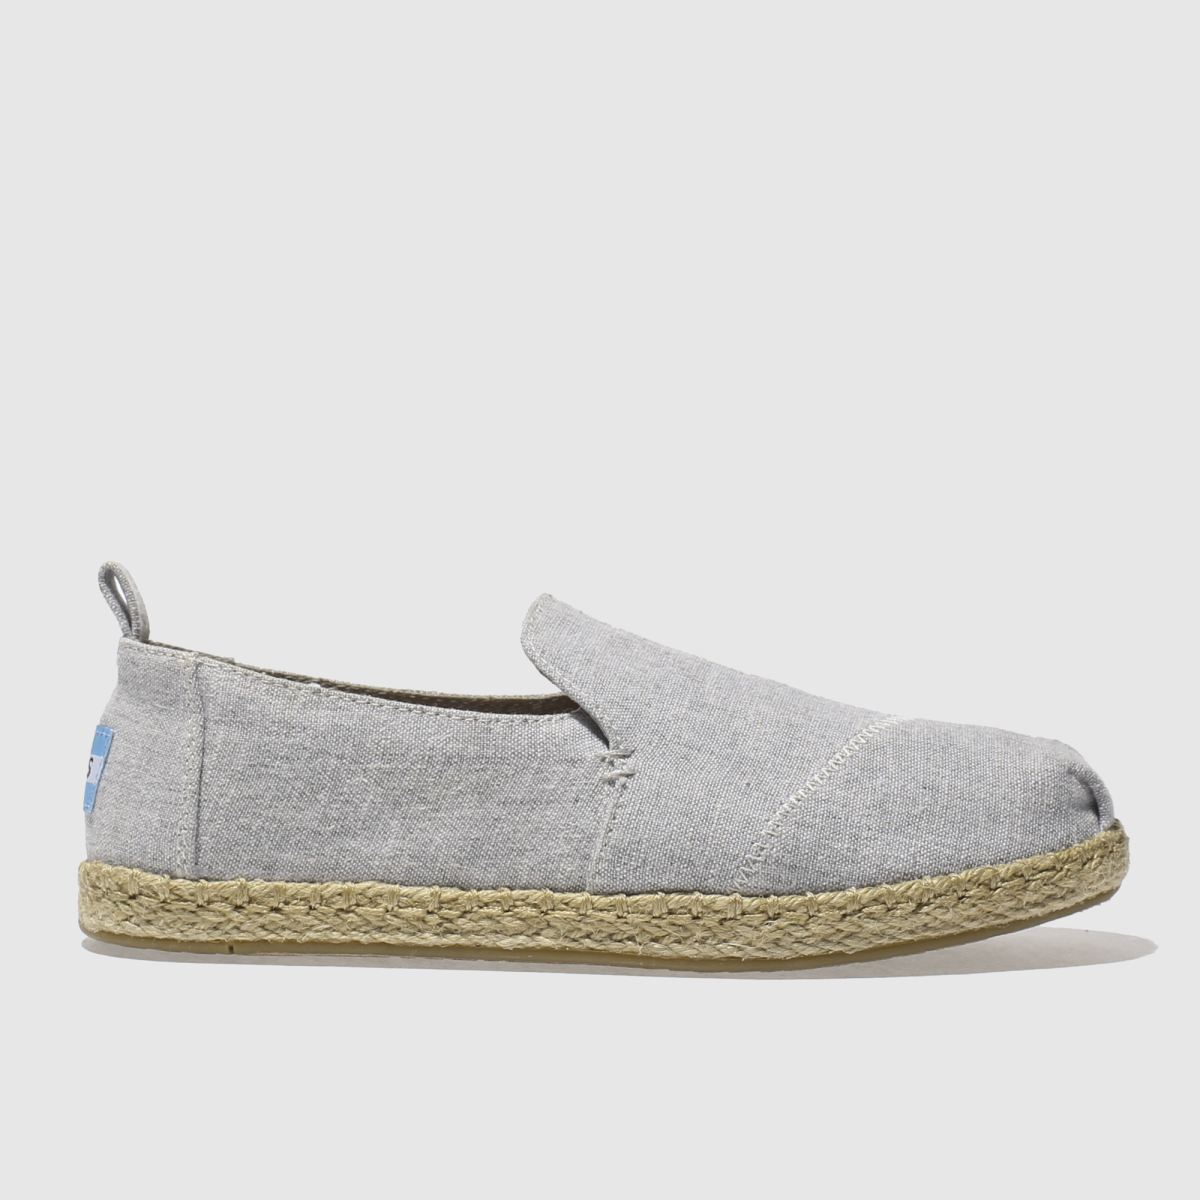 toms grey deconstructed alpargata flat shoes